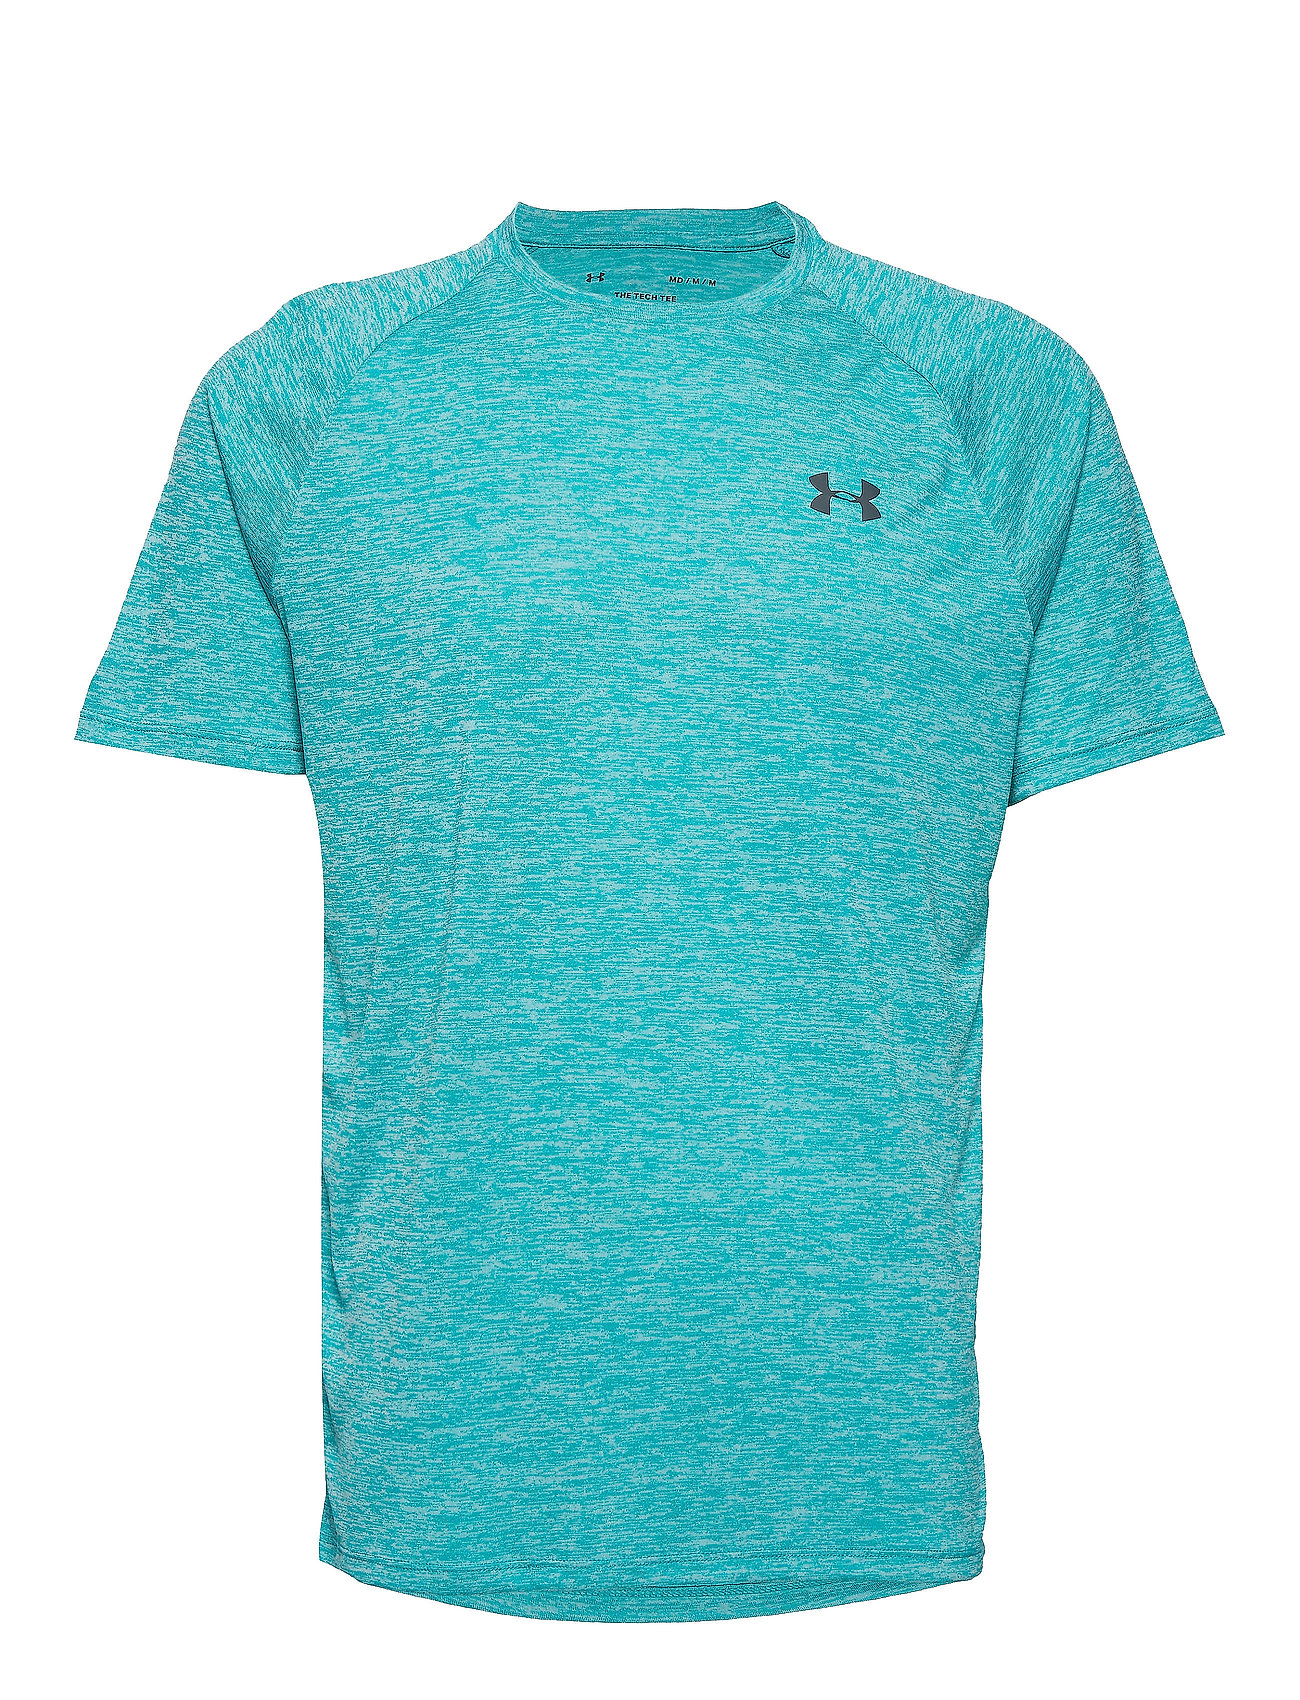 Under Armour UA Tech 2.0 SS Tee - TEAL RUSH